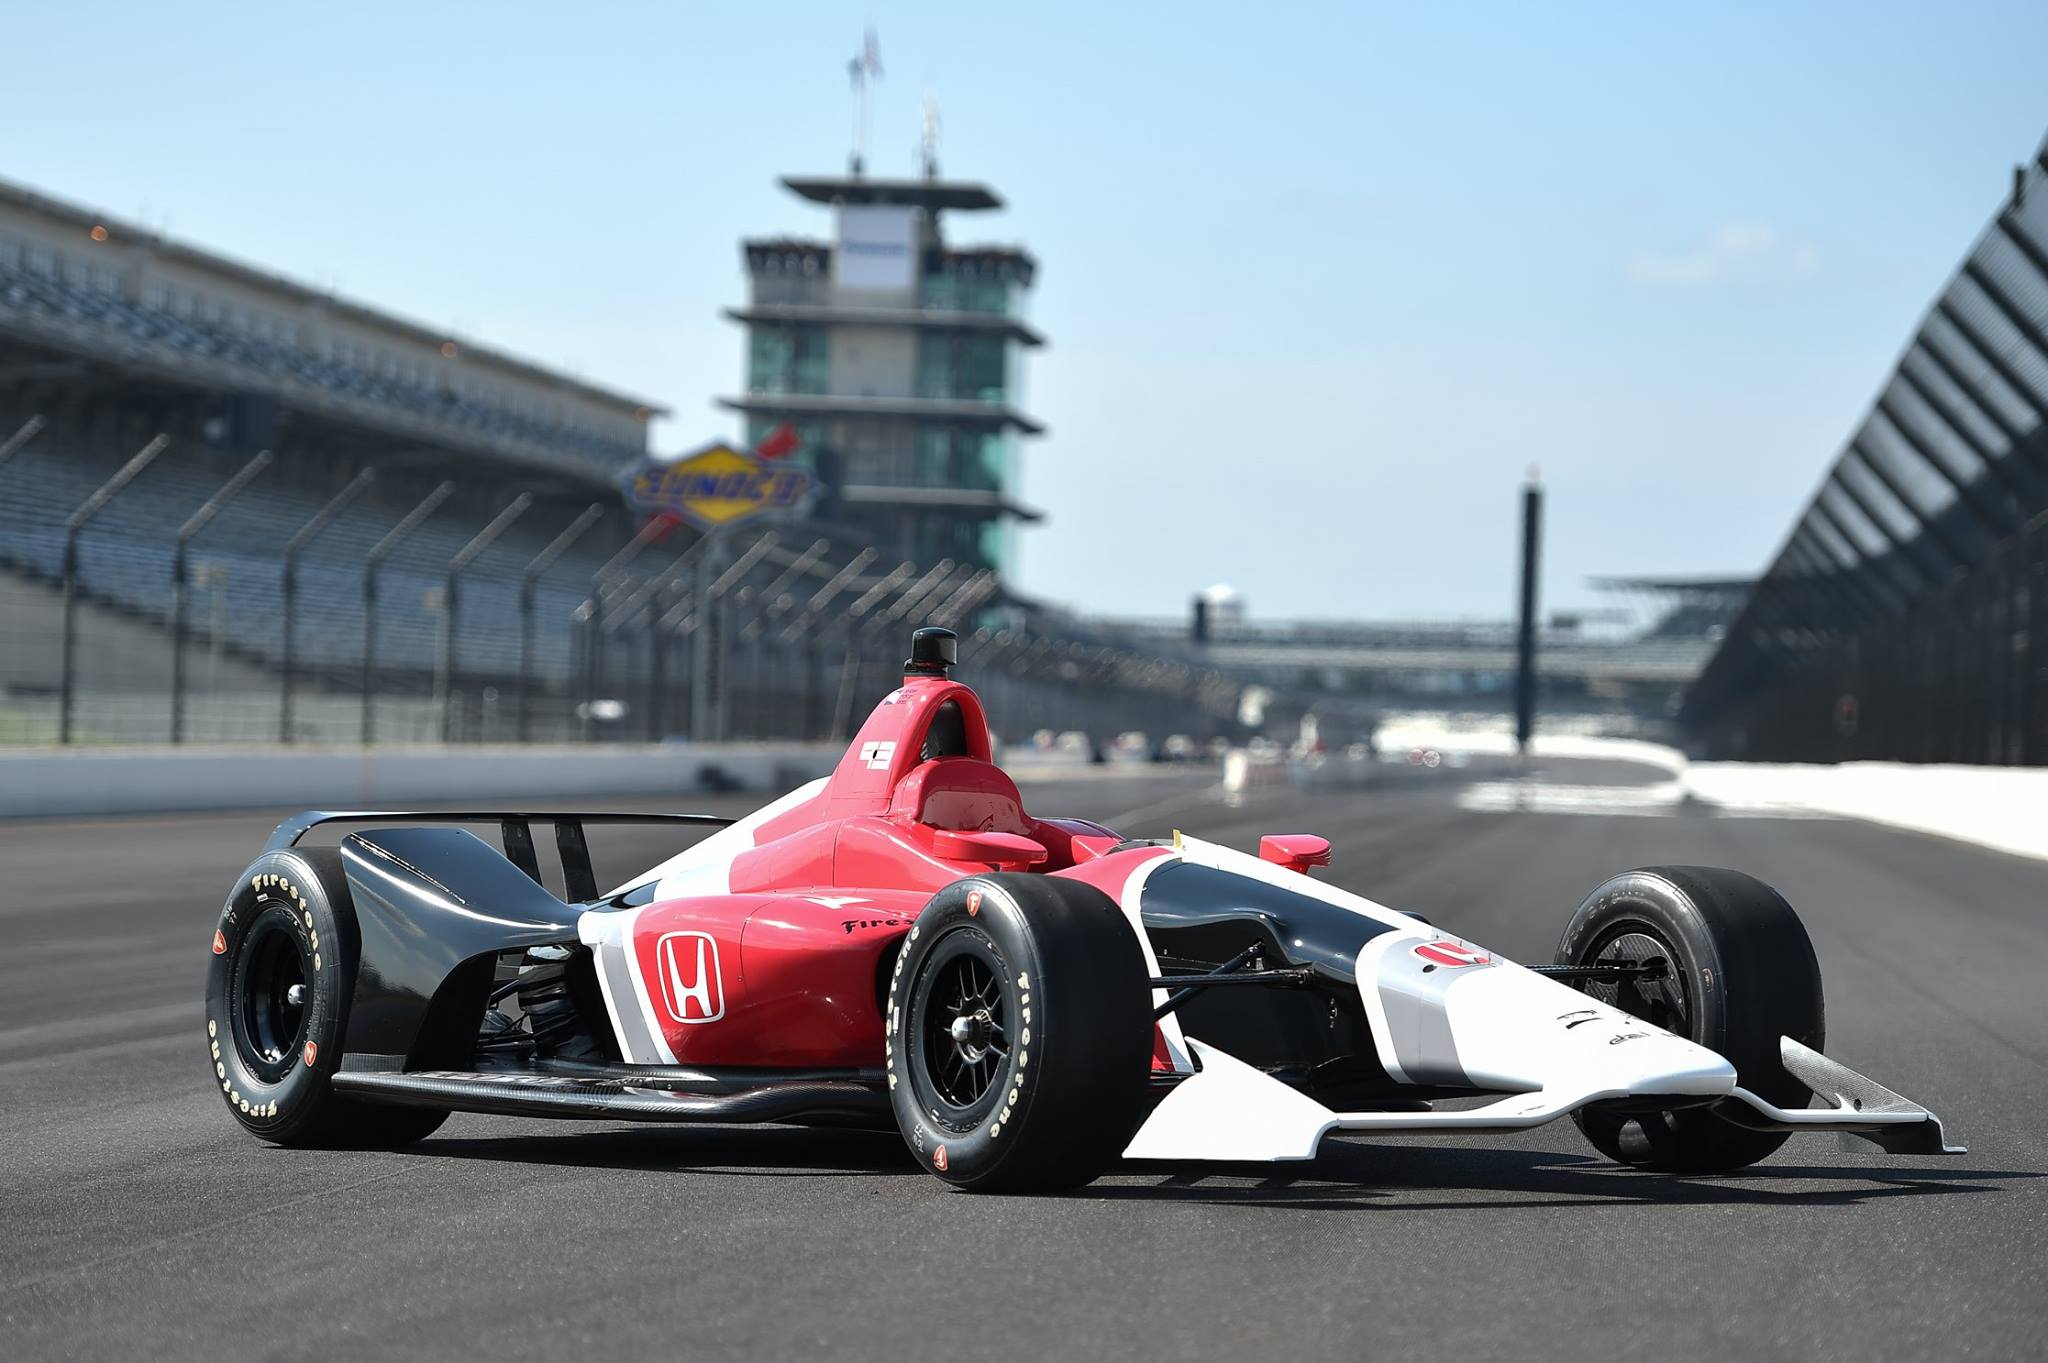 2018-spec IndyCar potentially coming to Forza Motorsport 7; talks for IndyCar game 'ongoing'